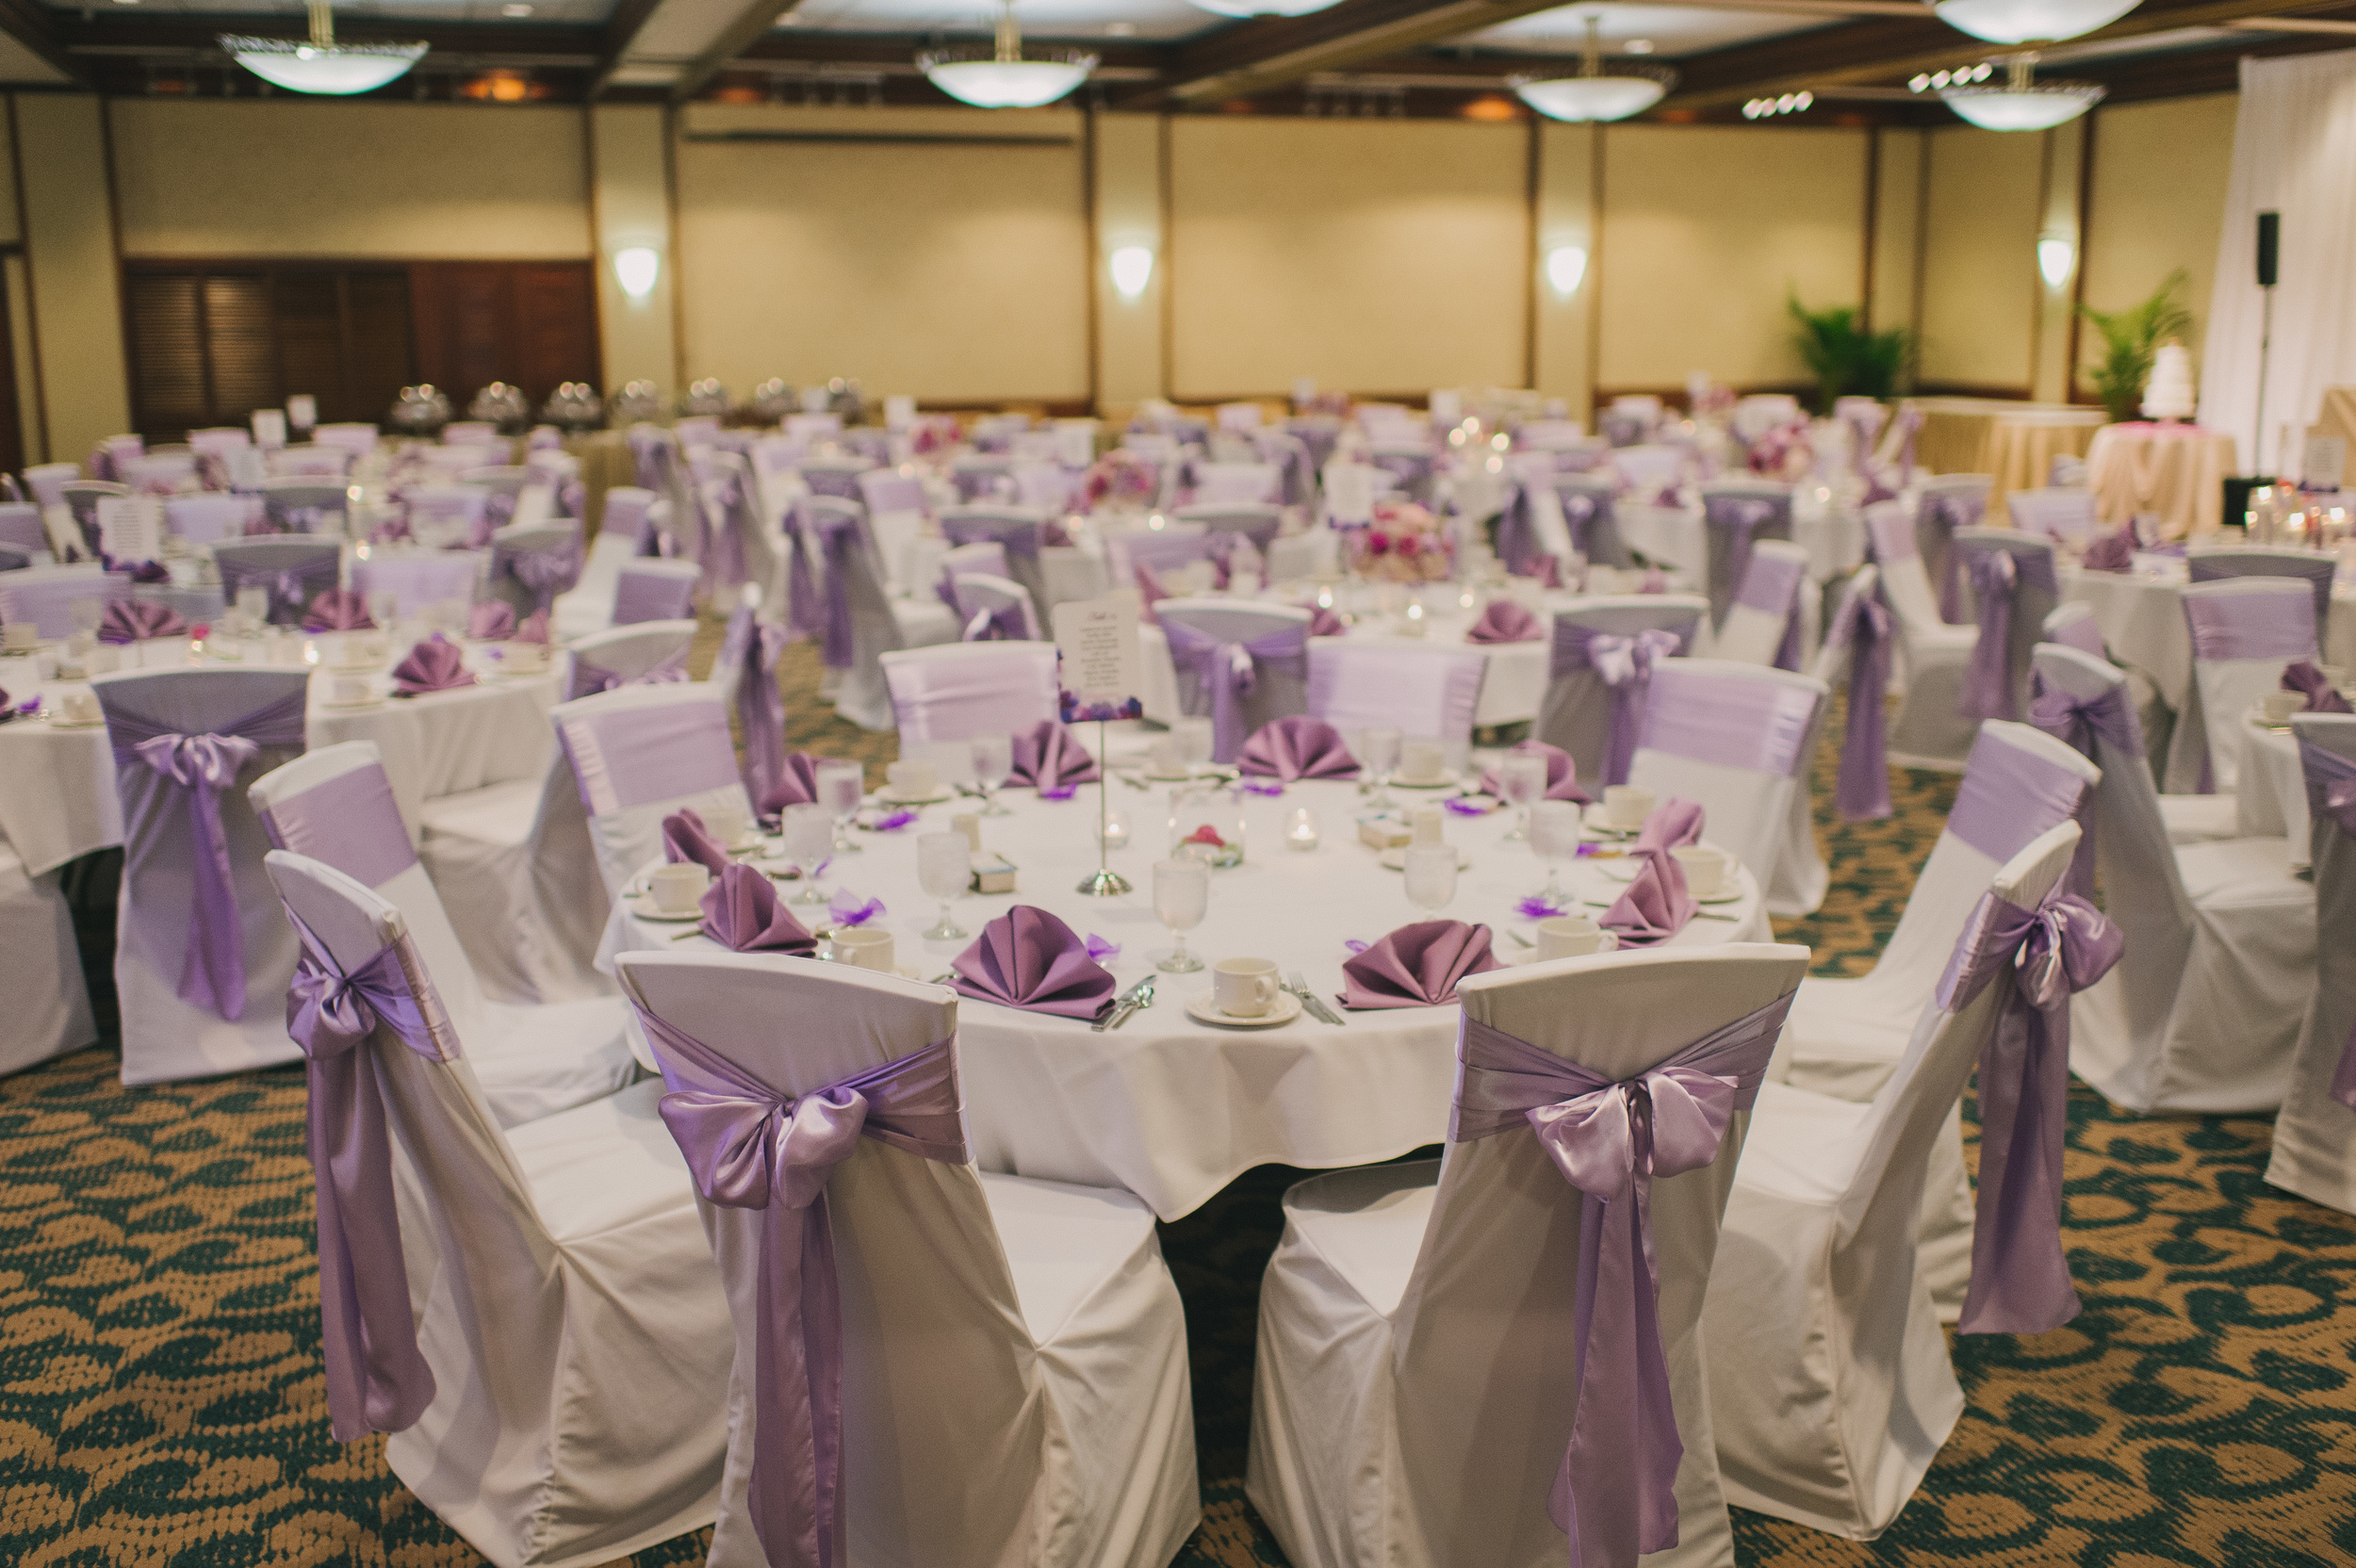 42-hale-koa-hotel-wedding-reception.jpg